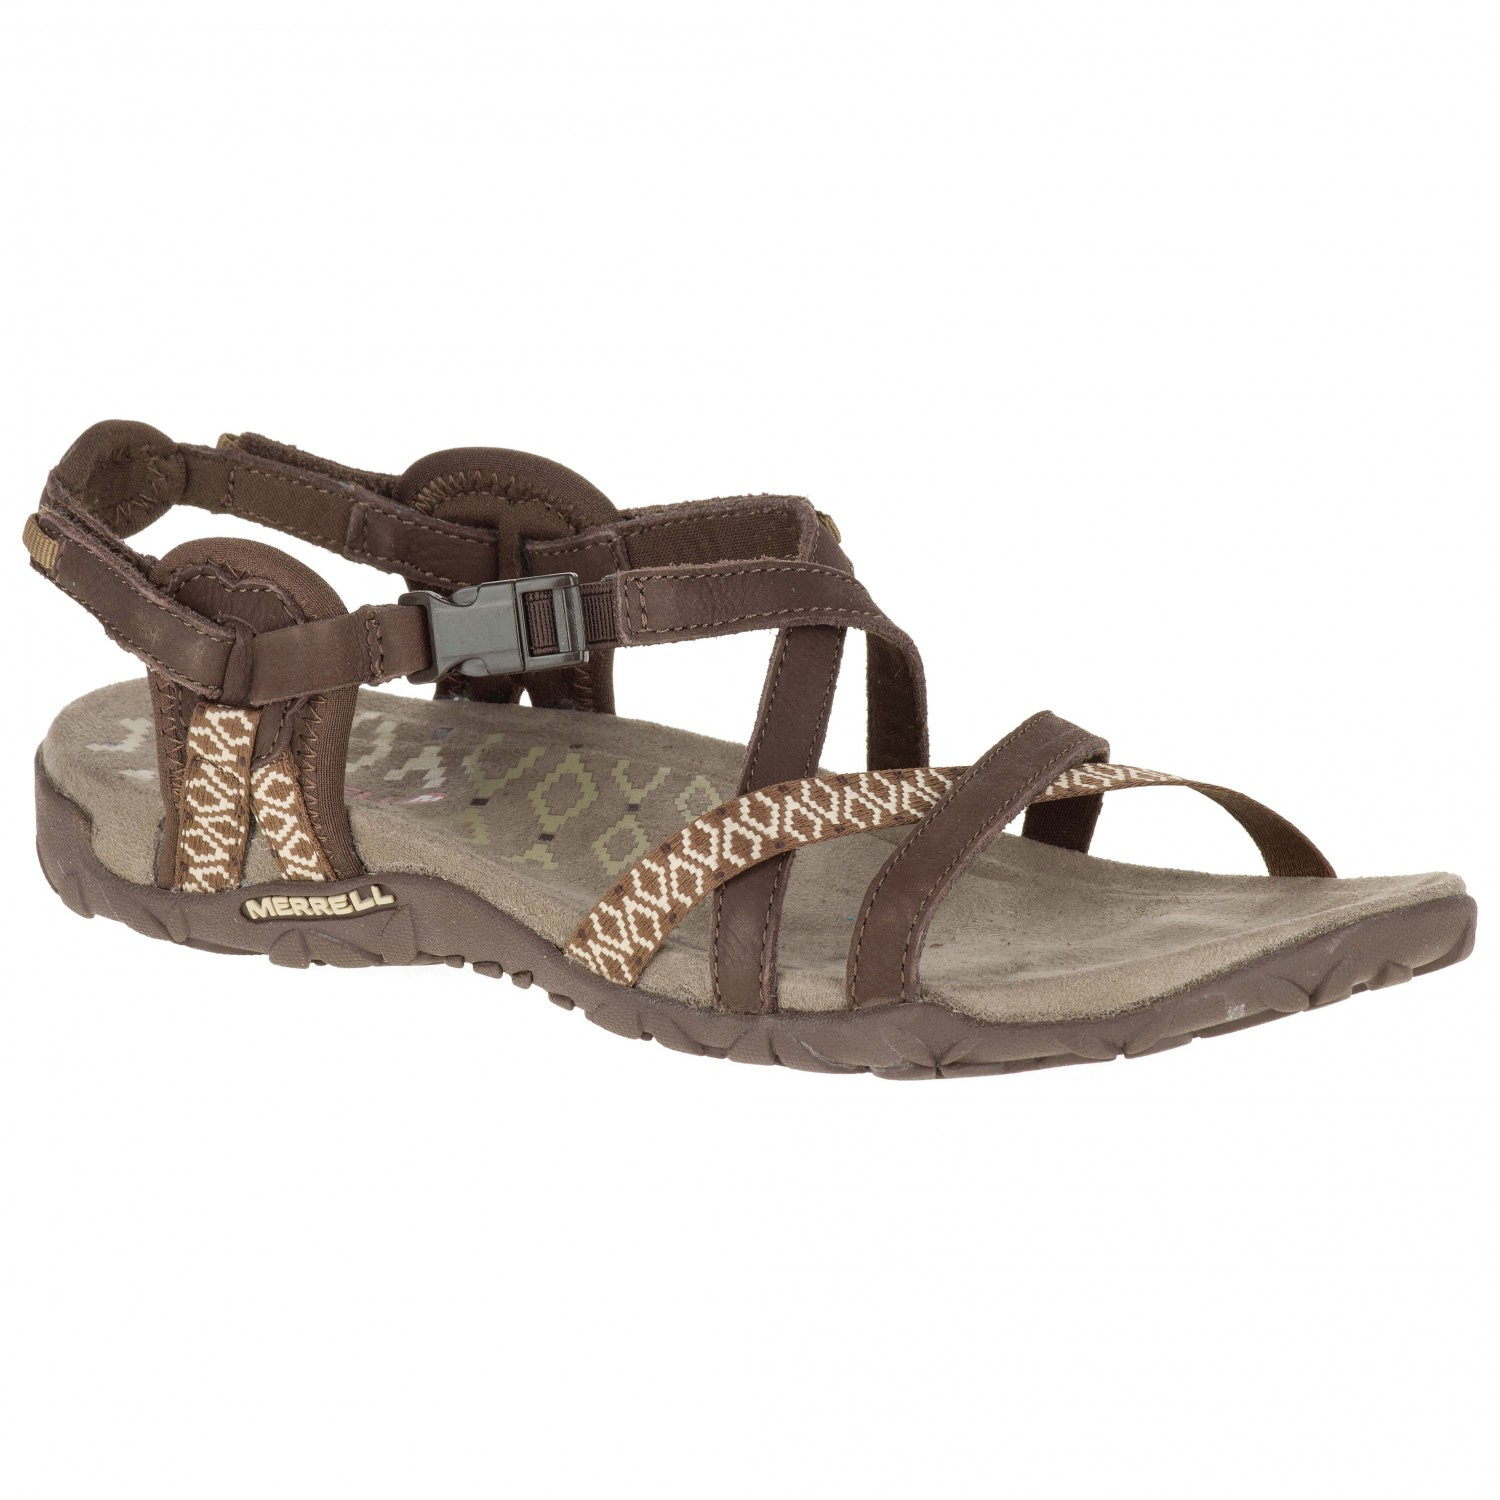 Merrell - Women's Terran Lattice II - Sandalen Dark Earth